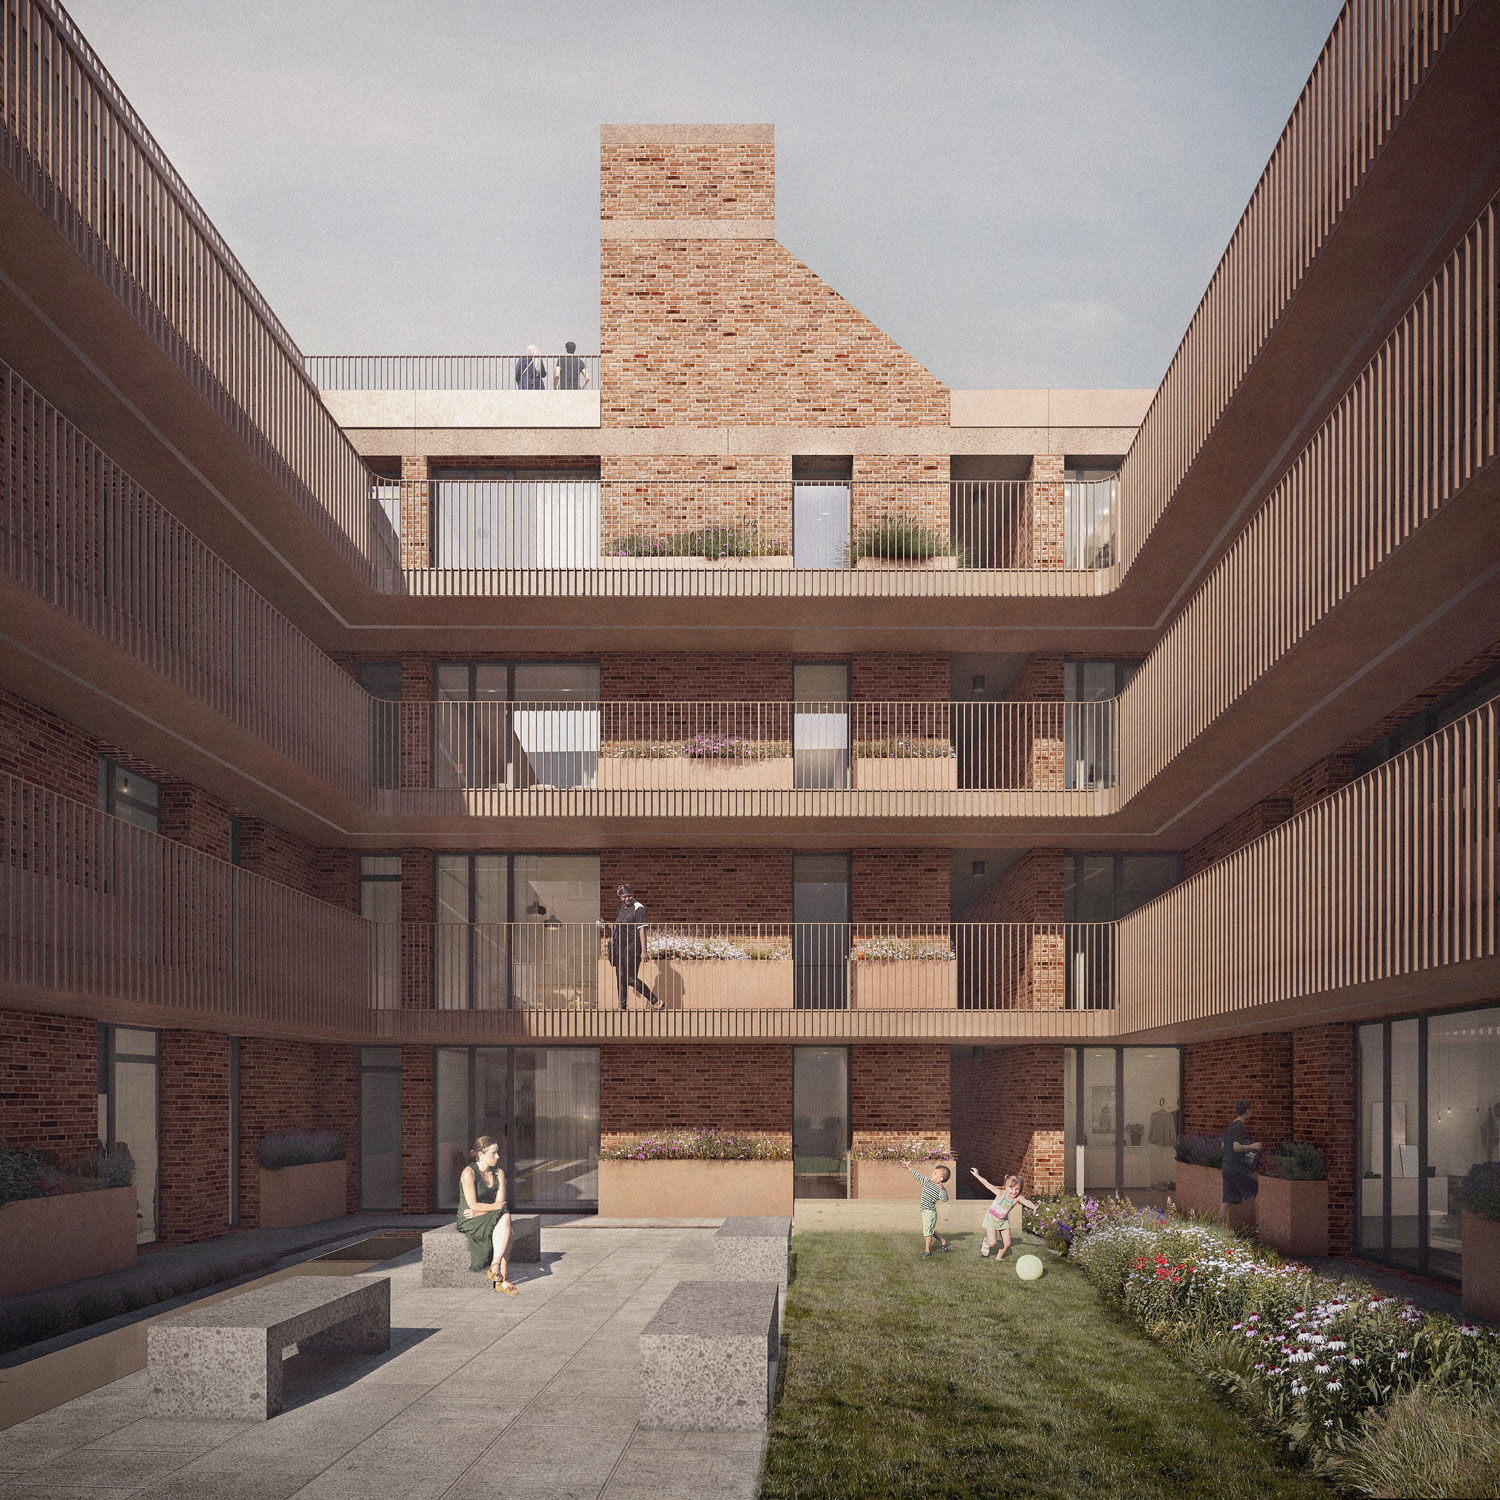 Build To Rent housing in east London: Architecture for London